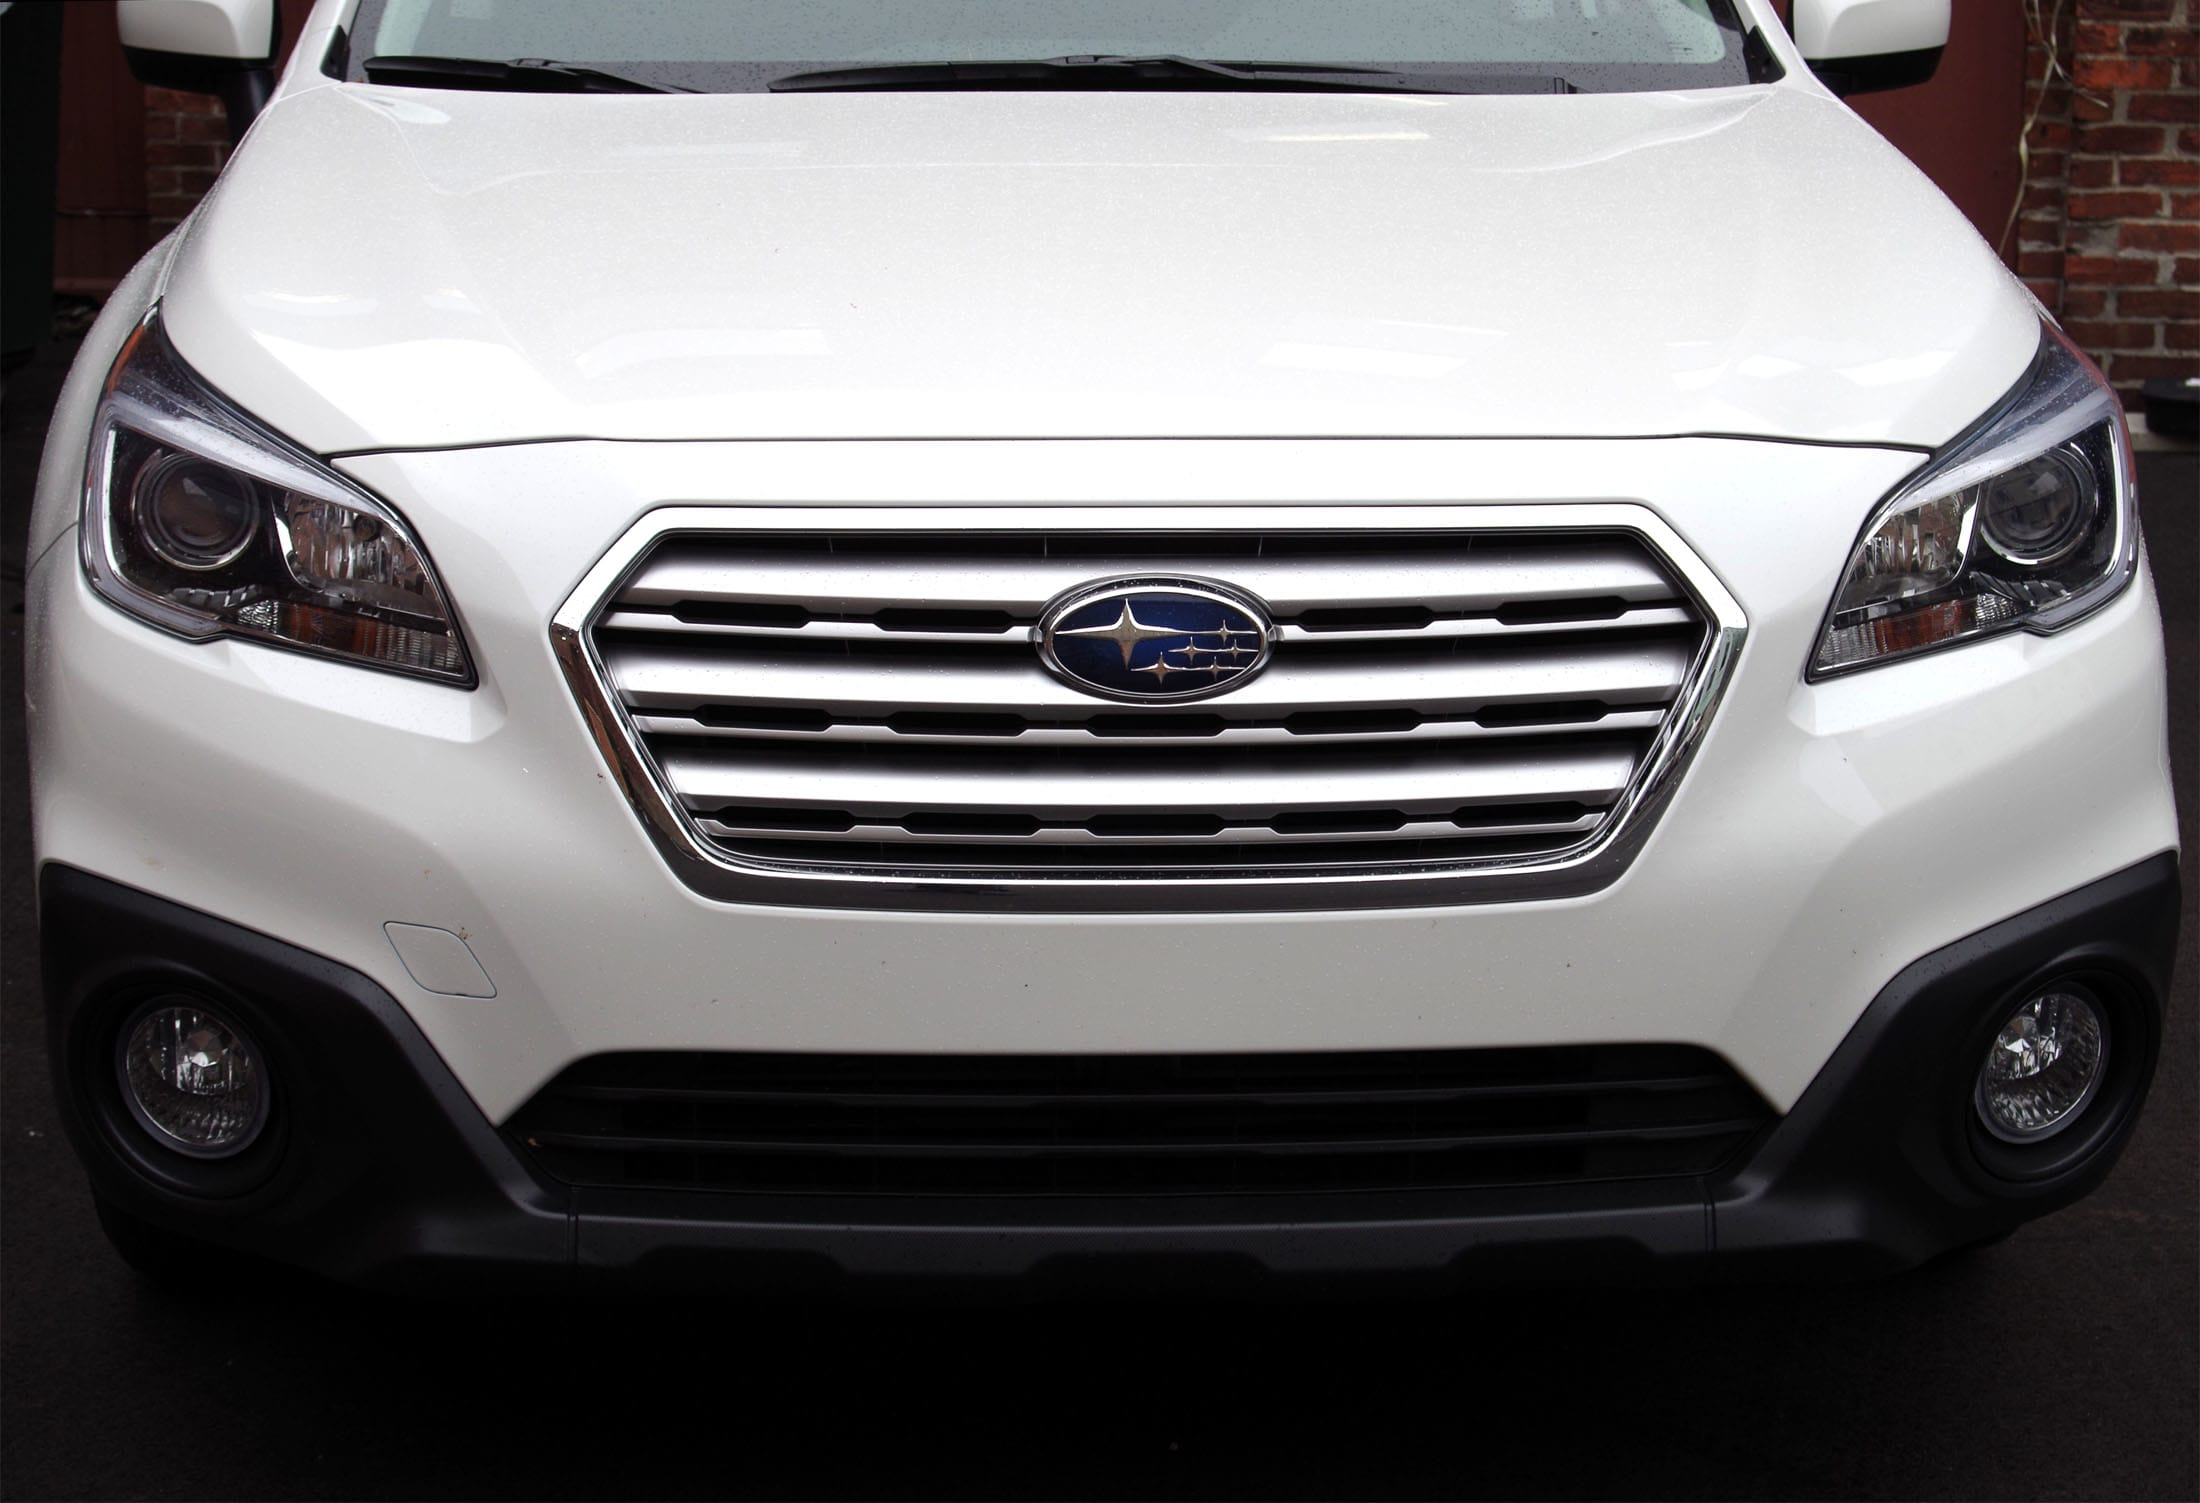 2015 Subaru Outback new grille